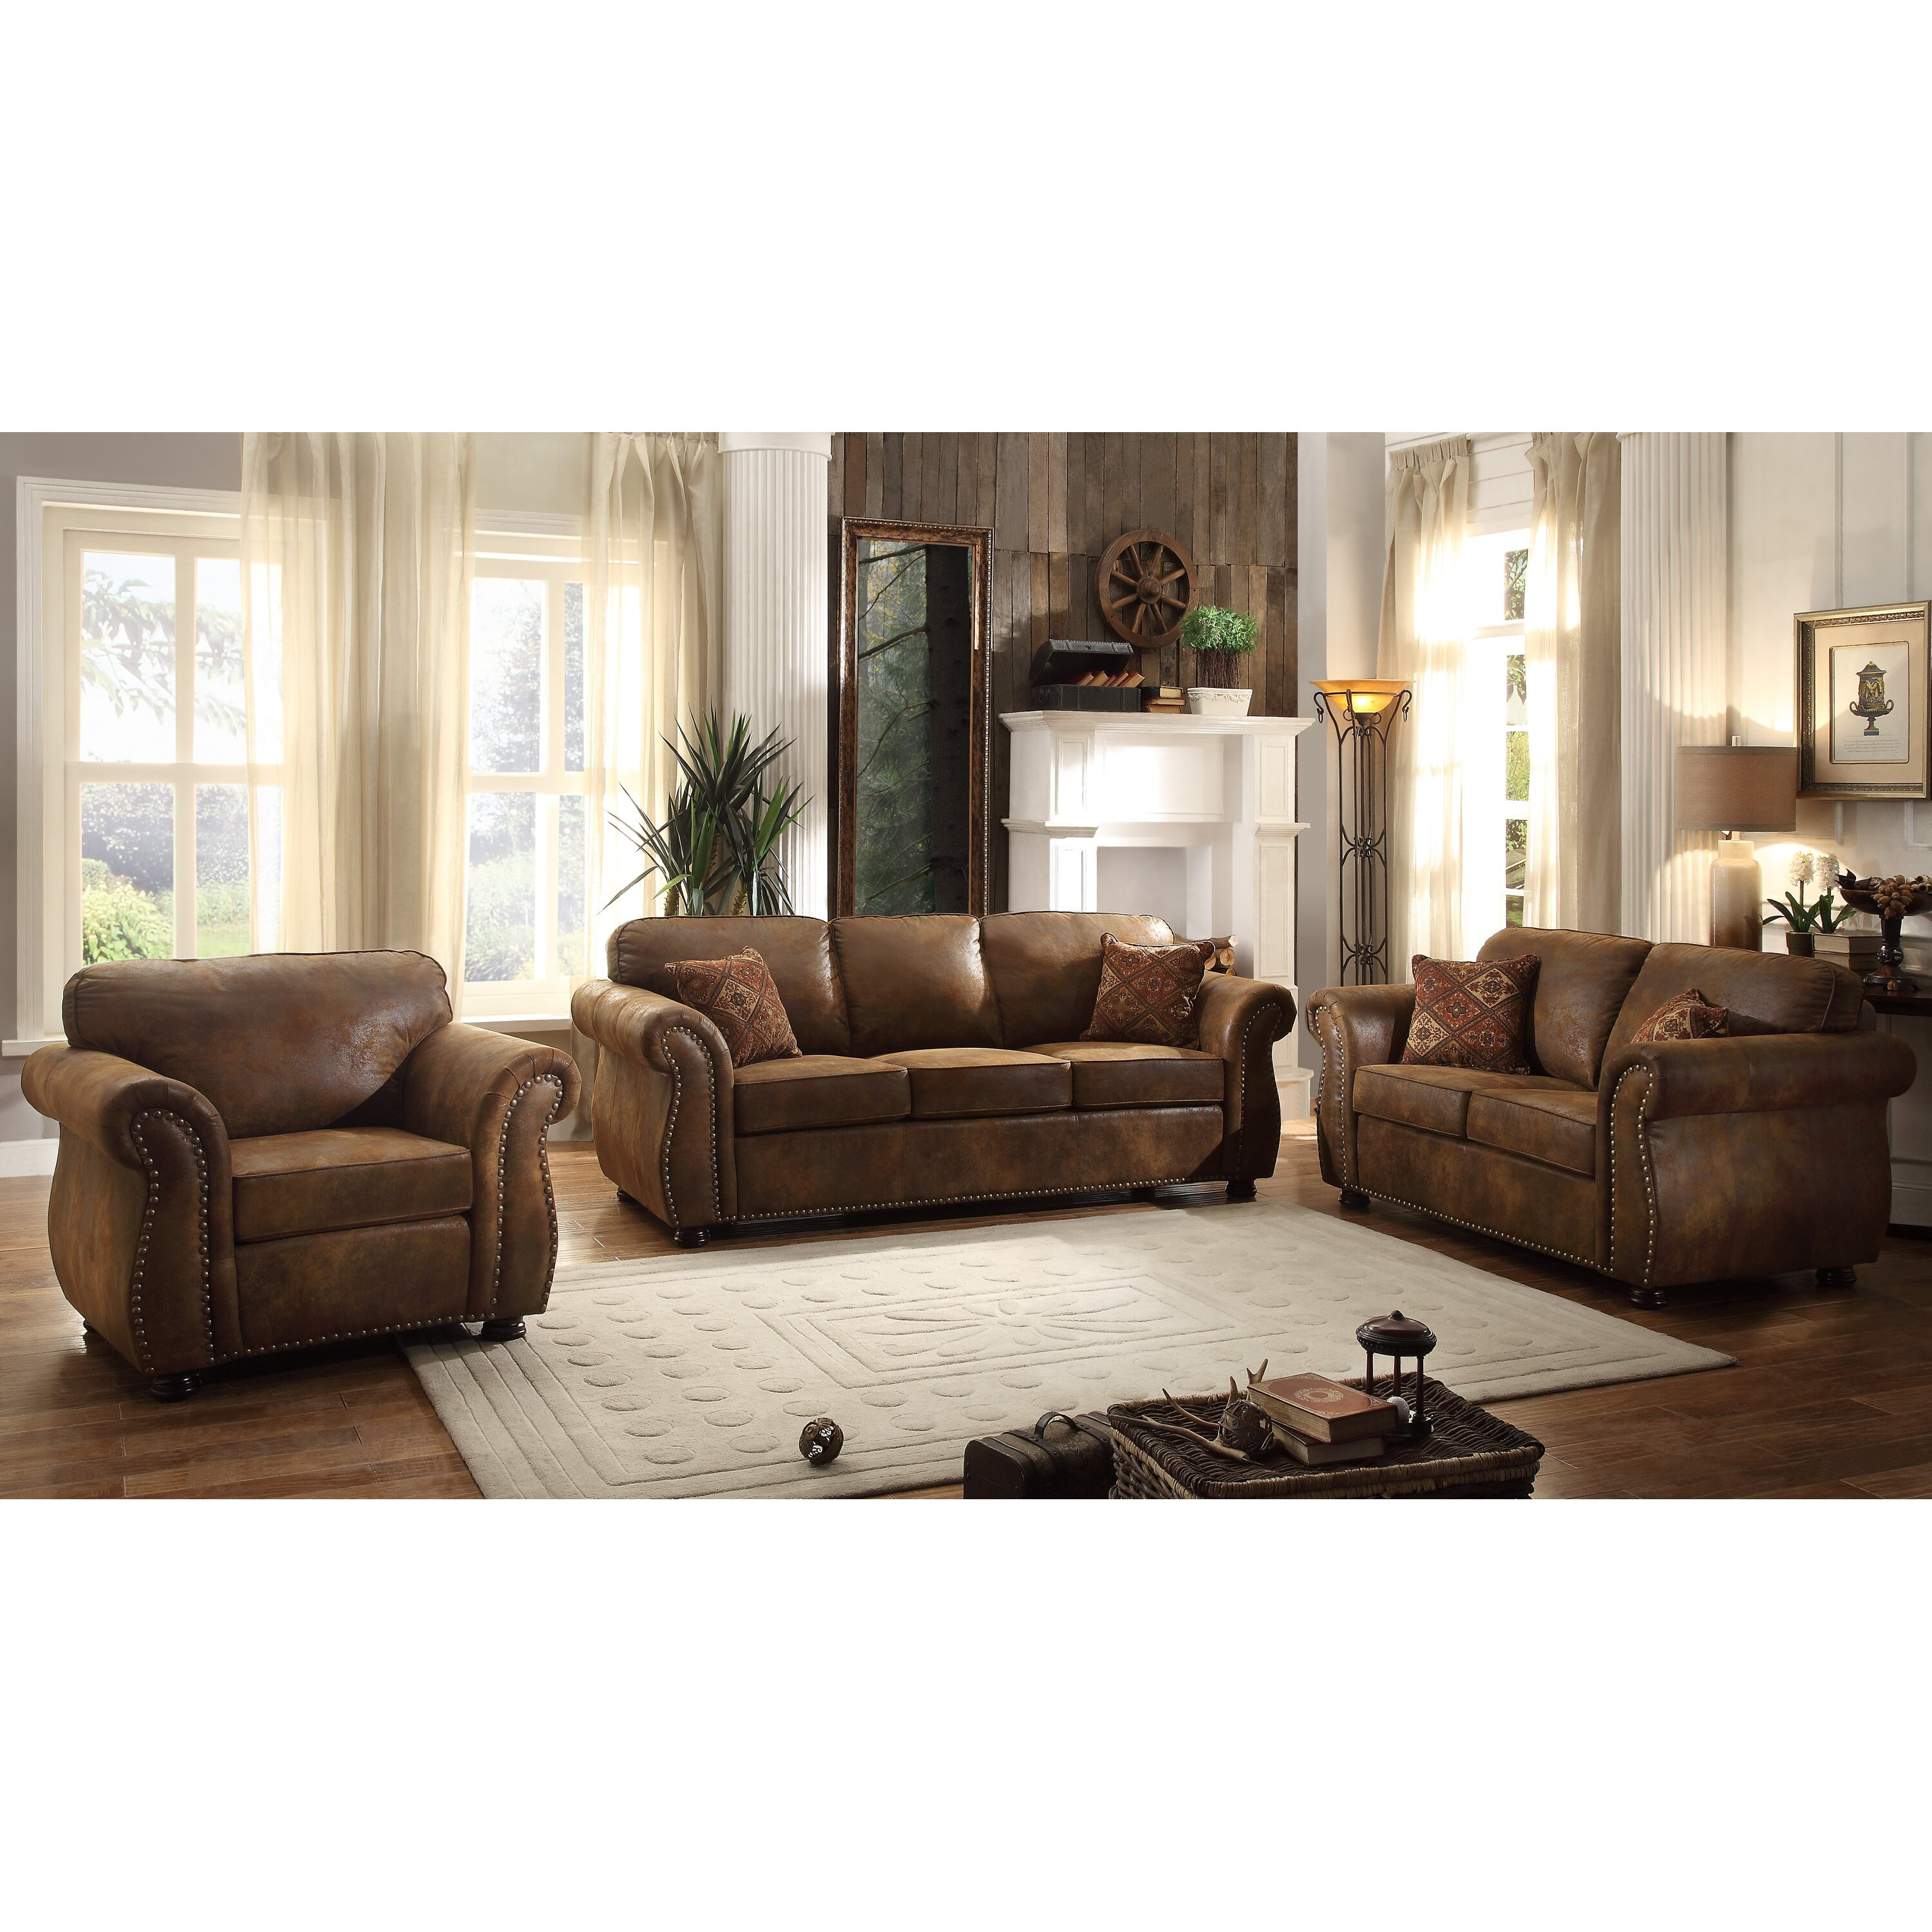 Furniture living room furniture contemporary living room sets loon